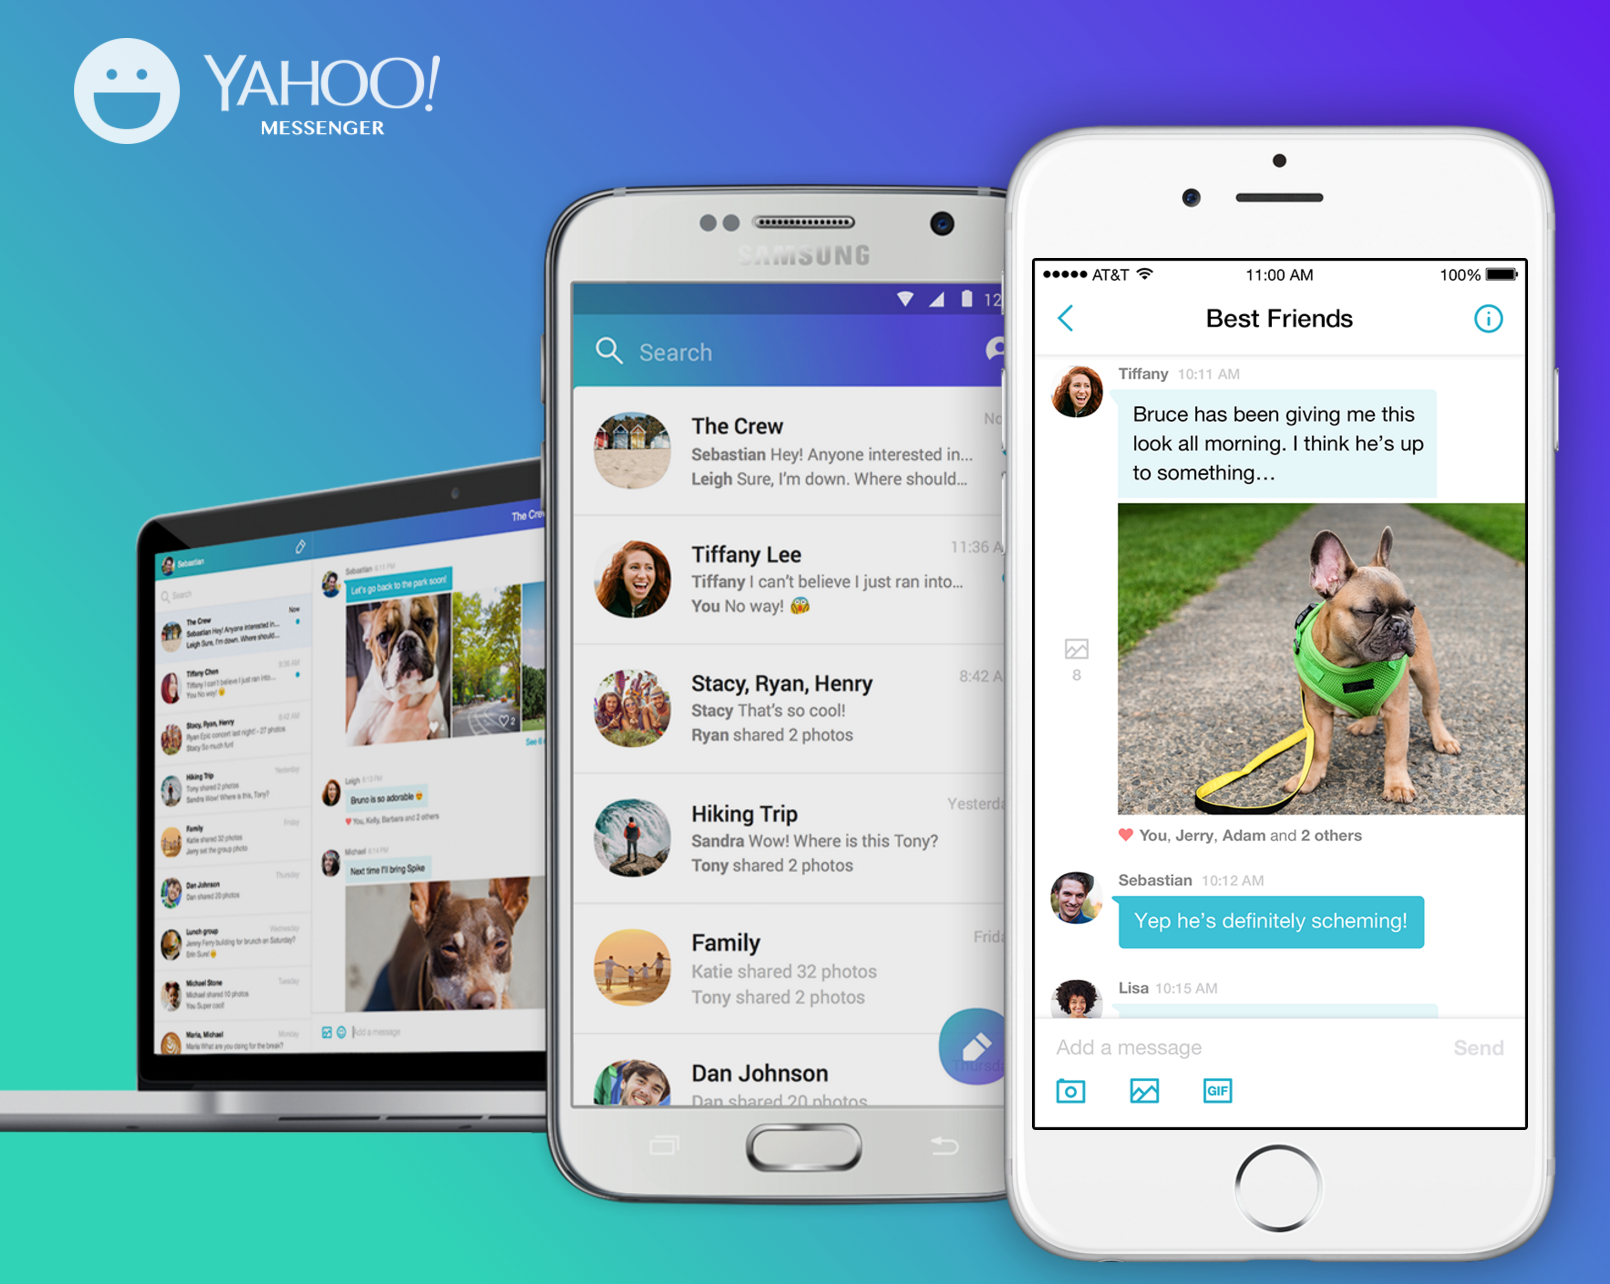 Yahoo! Messenger will shut down in July, after a two decade run